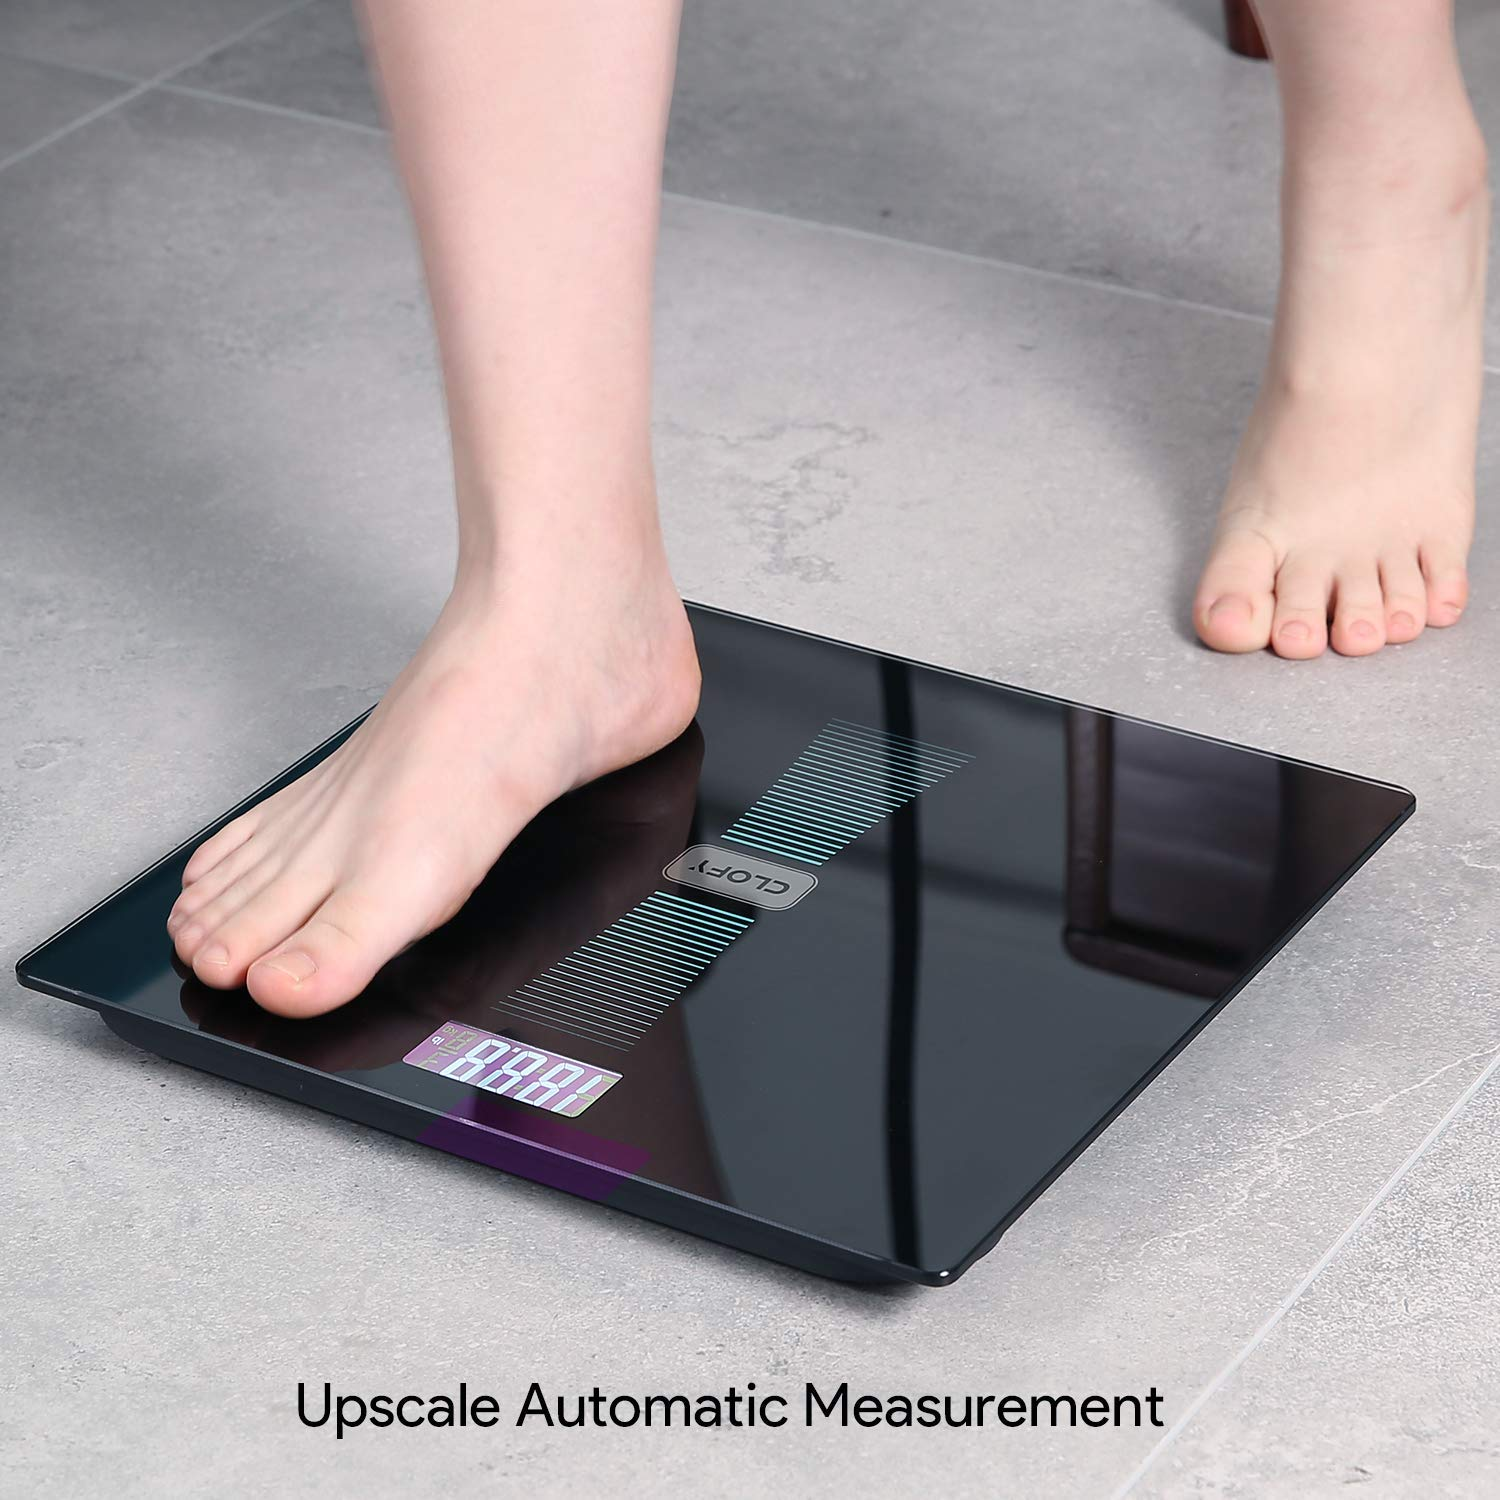 Digital Scale, Bathroom Body Weight Scale with Tempered Glass Accurate Weight Measurements Max Capacity 440lb